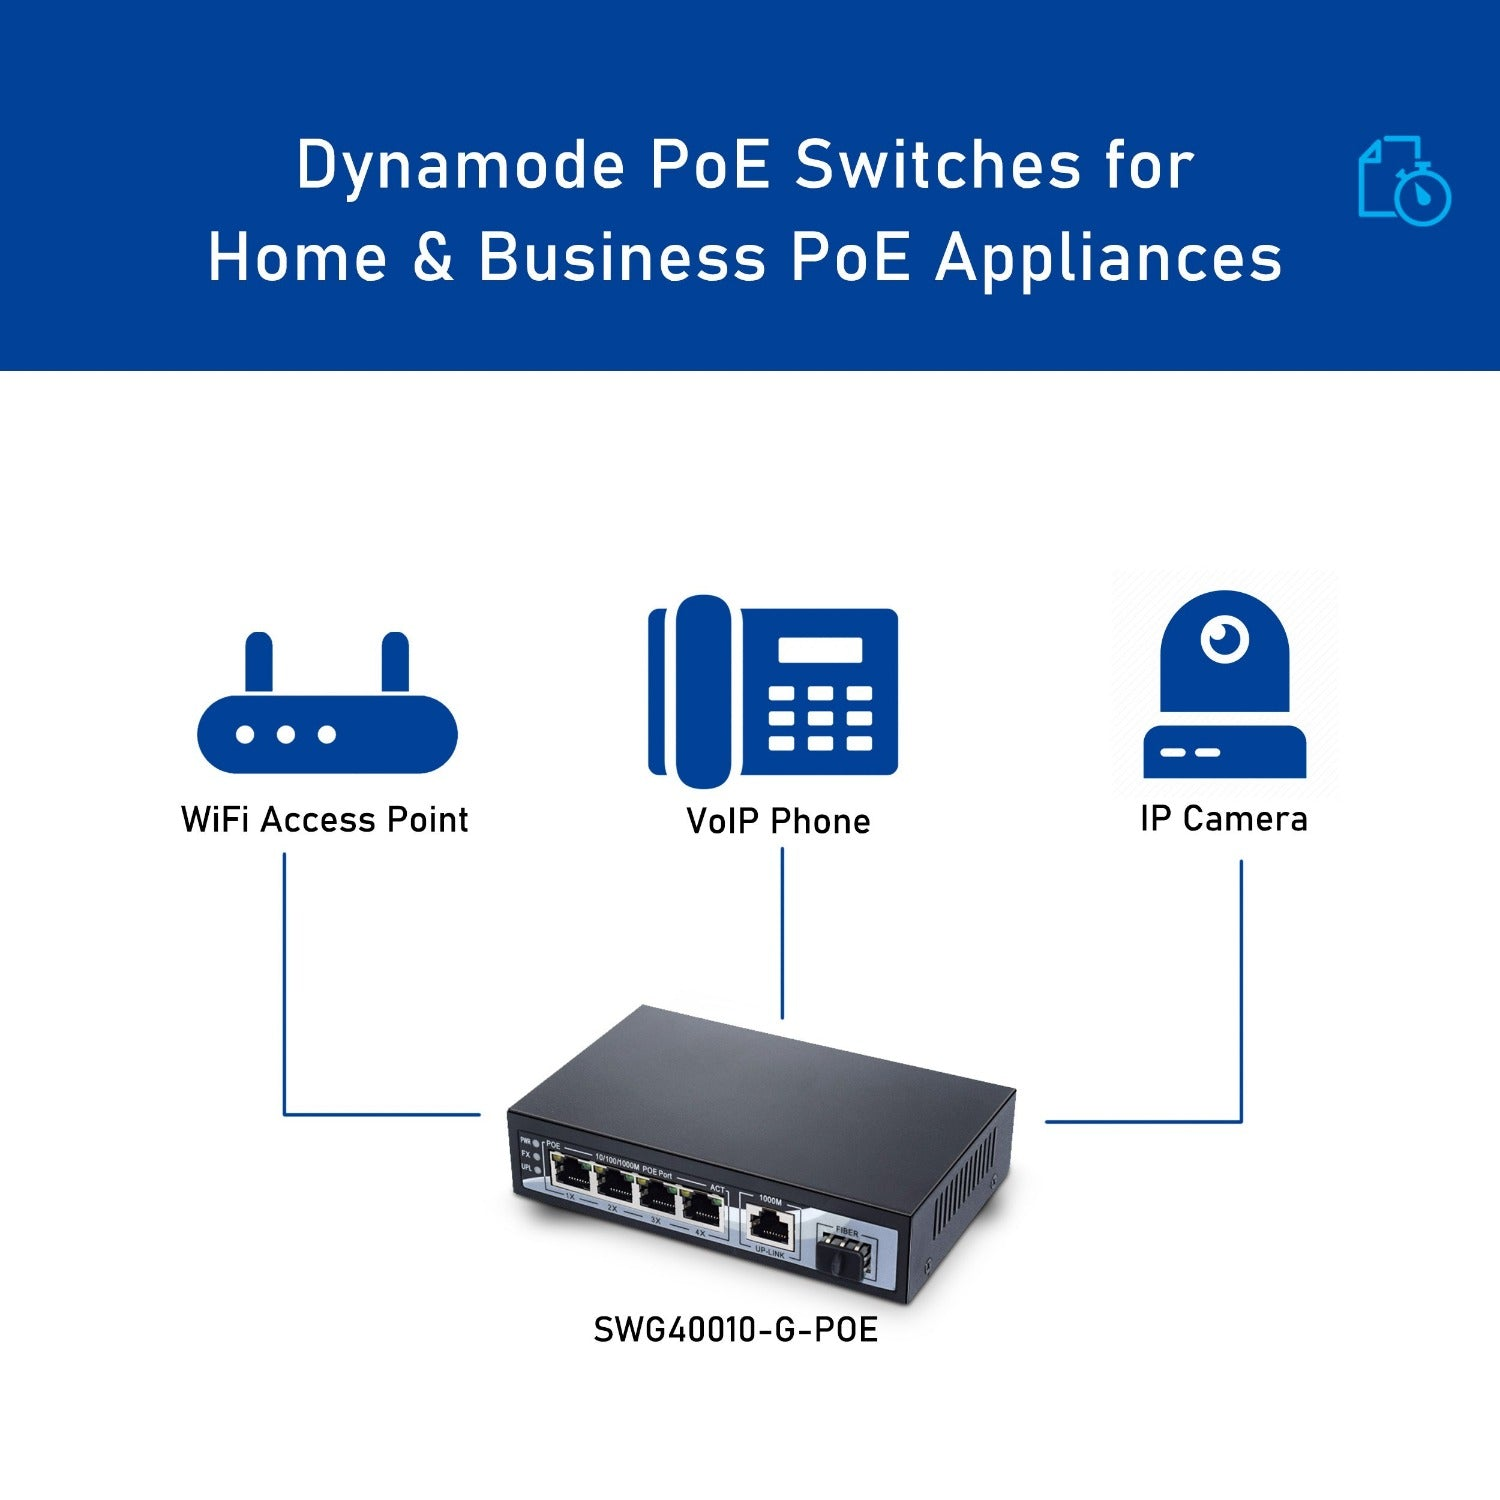 Dynamode SW40010-G-POE 4 Port Gigabit Ethernet POE Switch